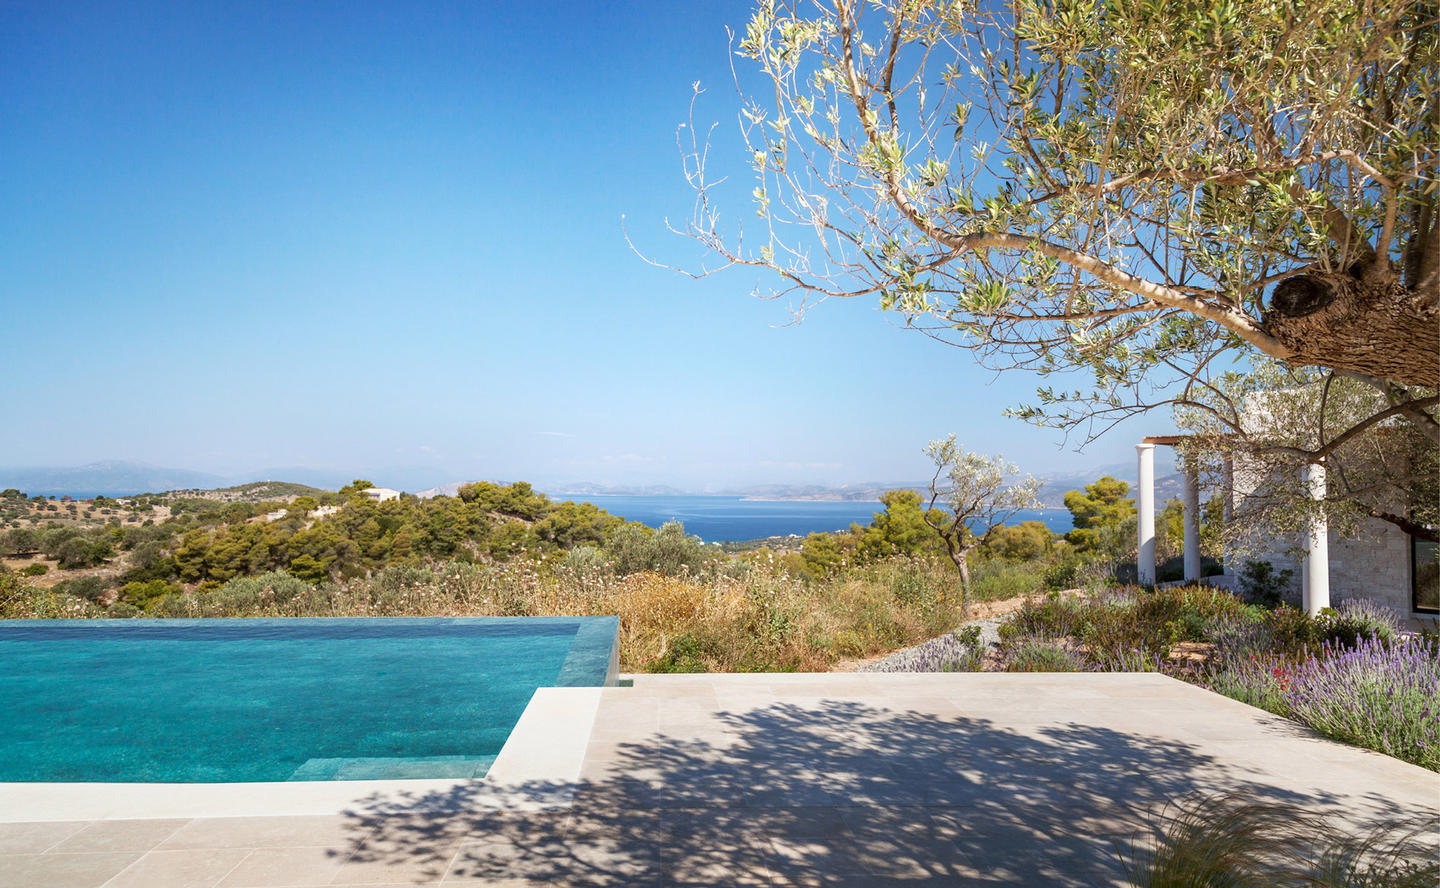 Swimming Pool, Six-Bedroom Villa - Amanzoe, Greece